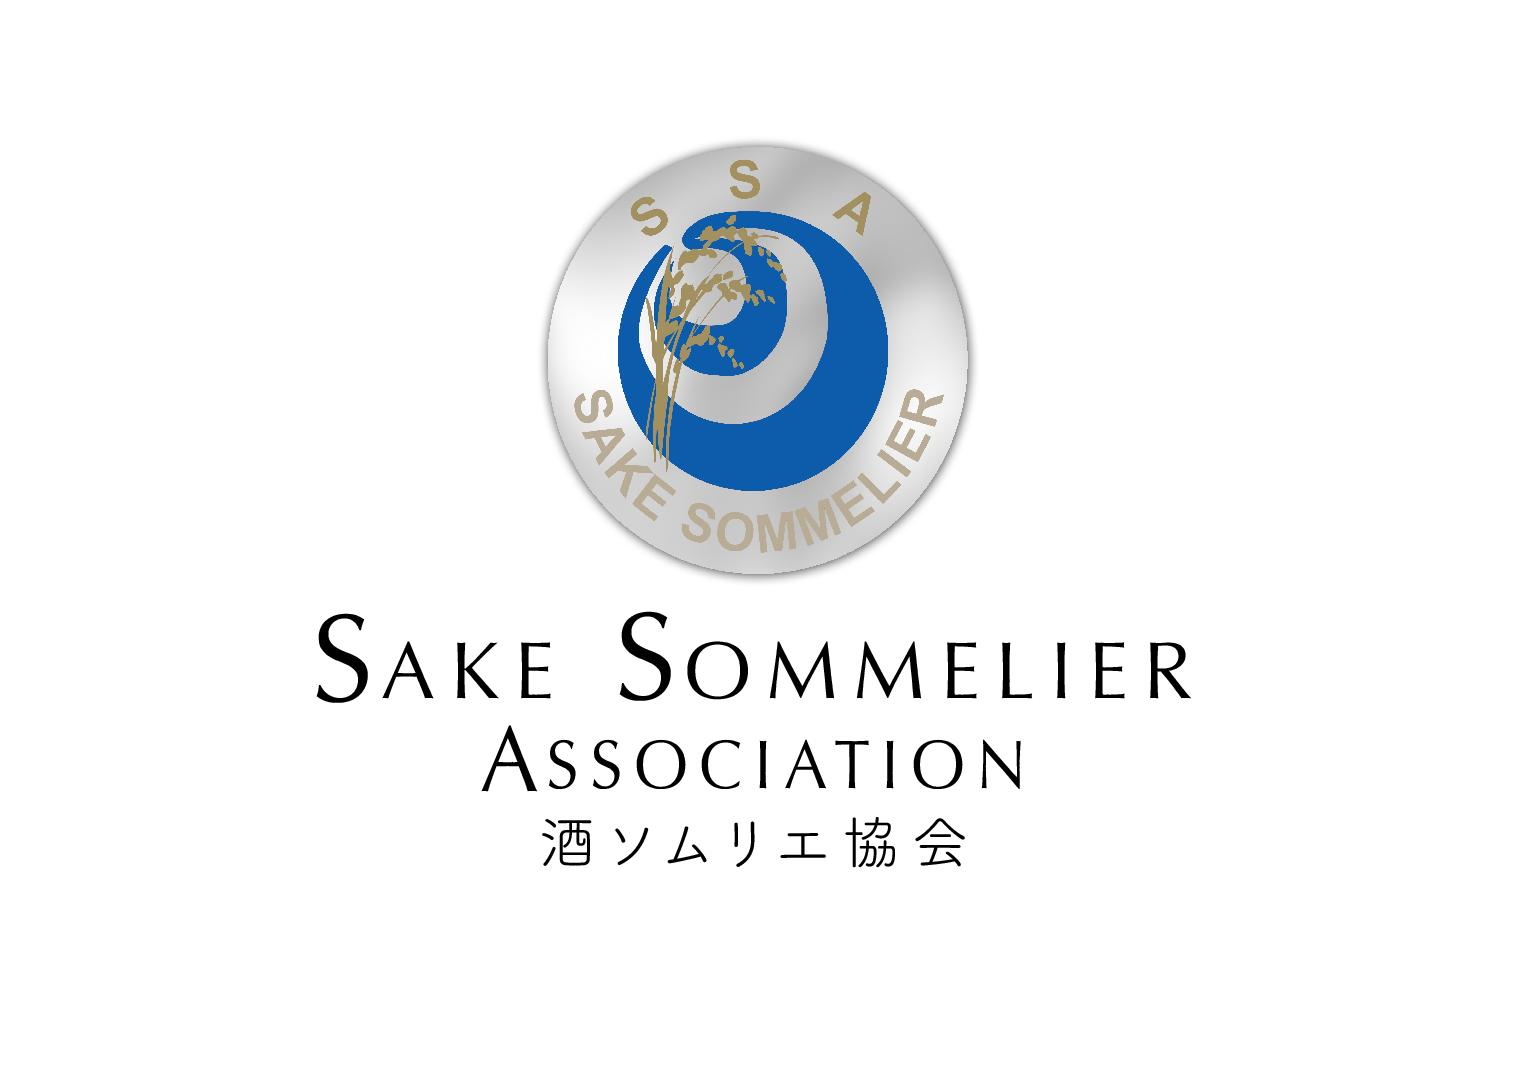 Sake Sommelier Association